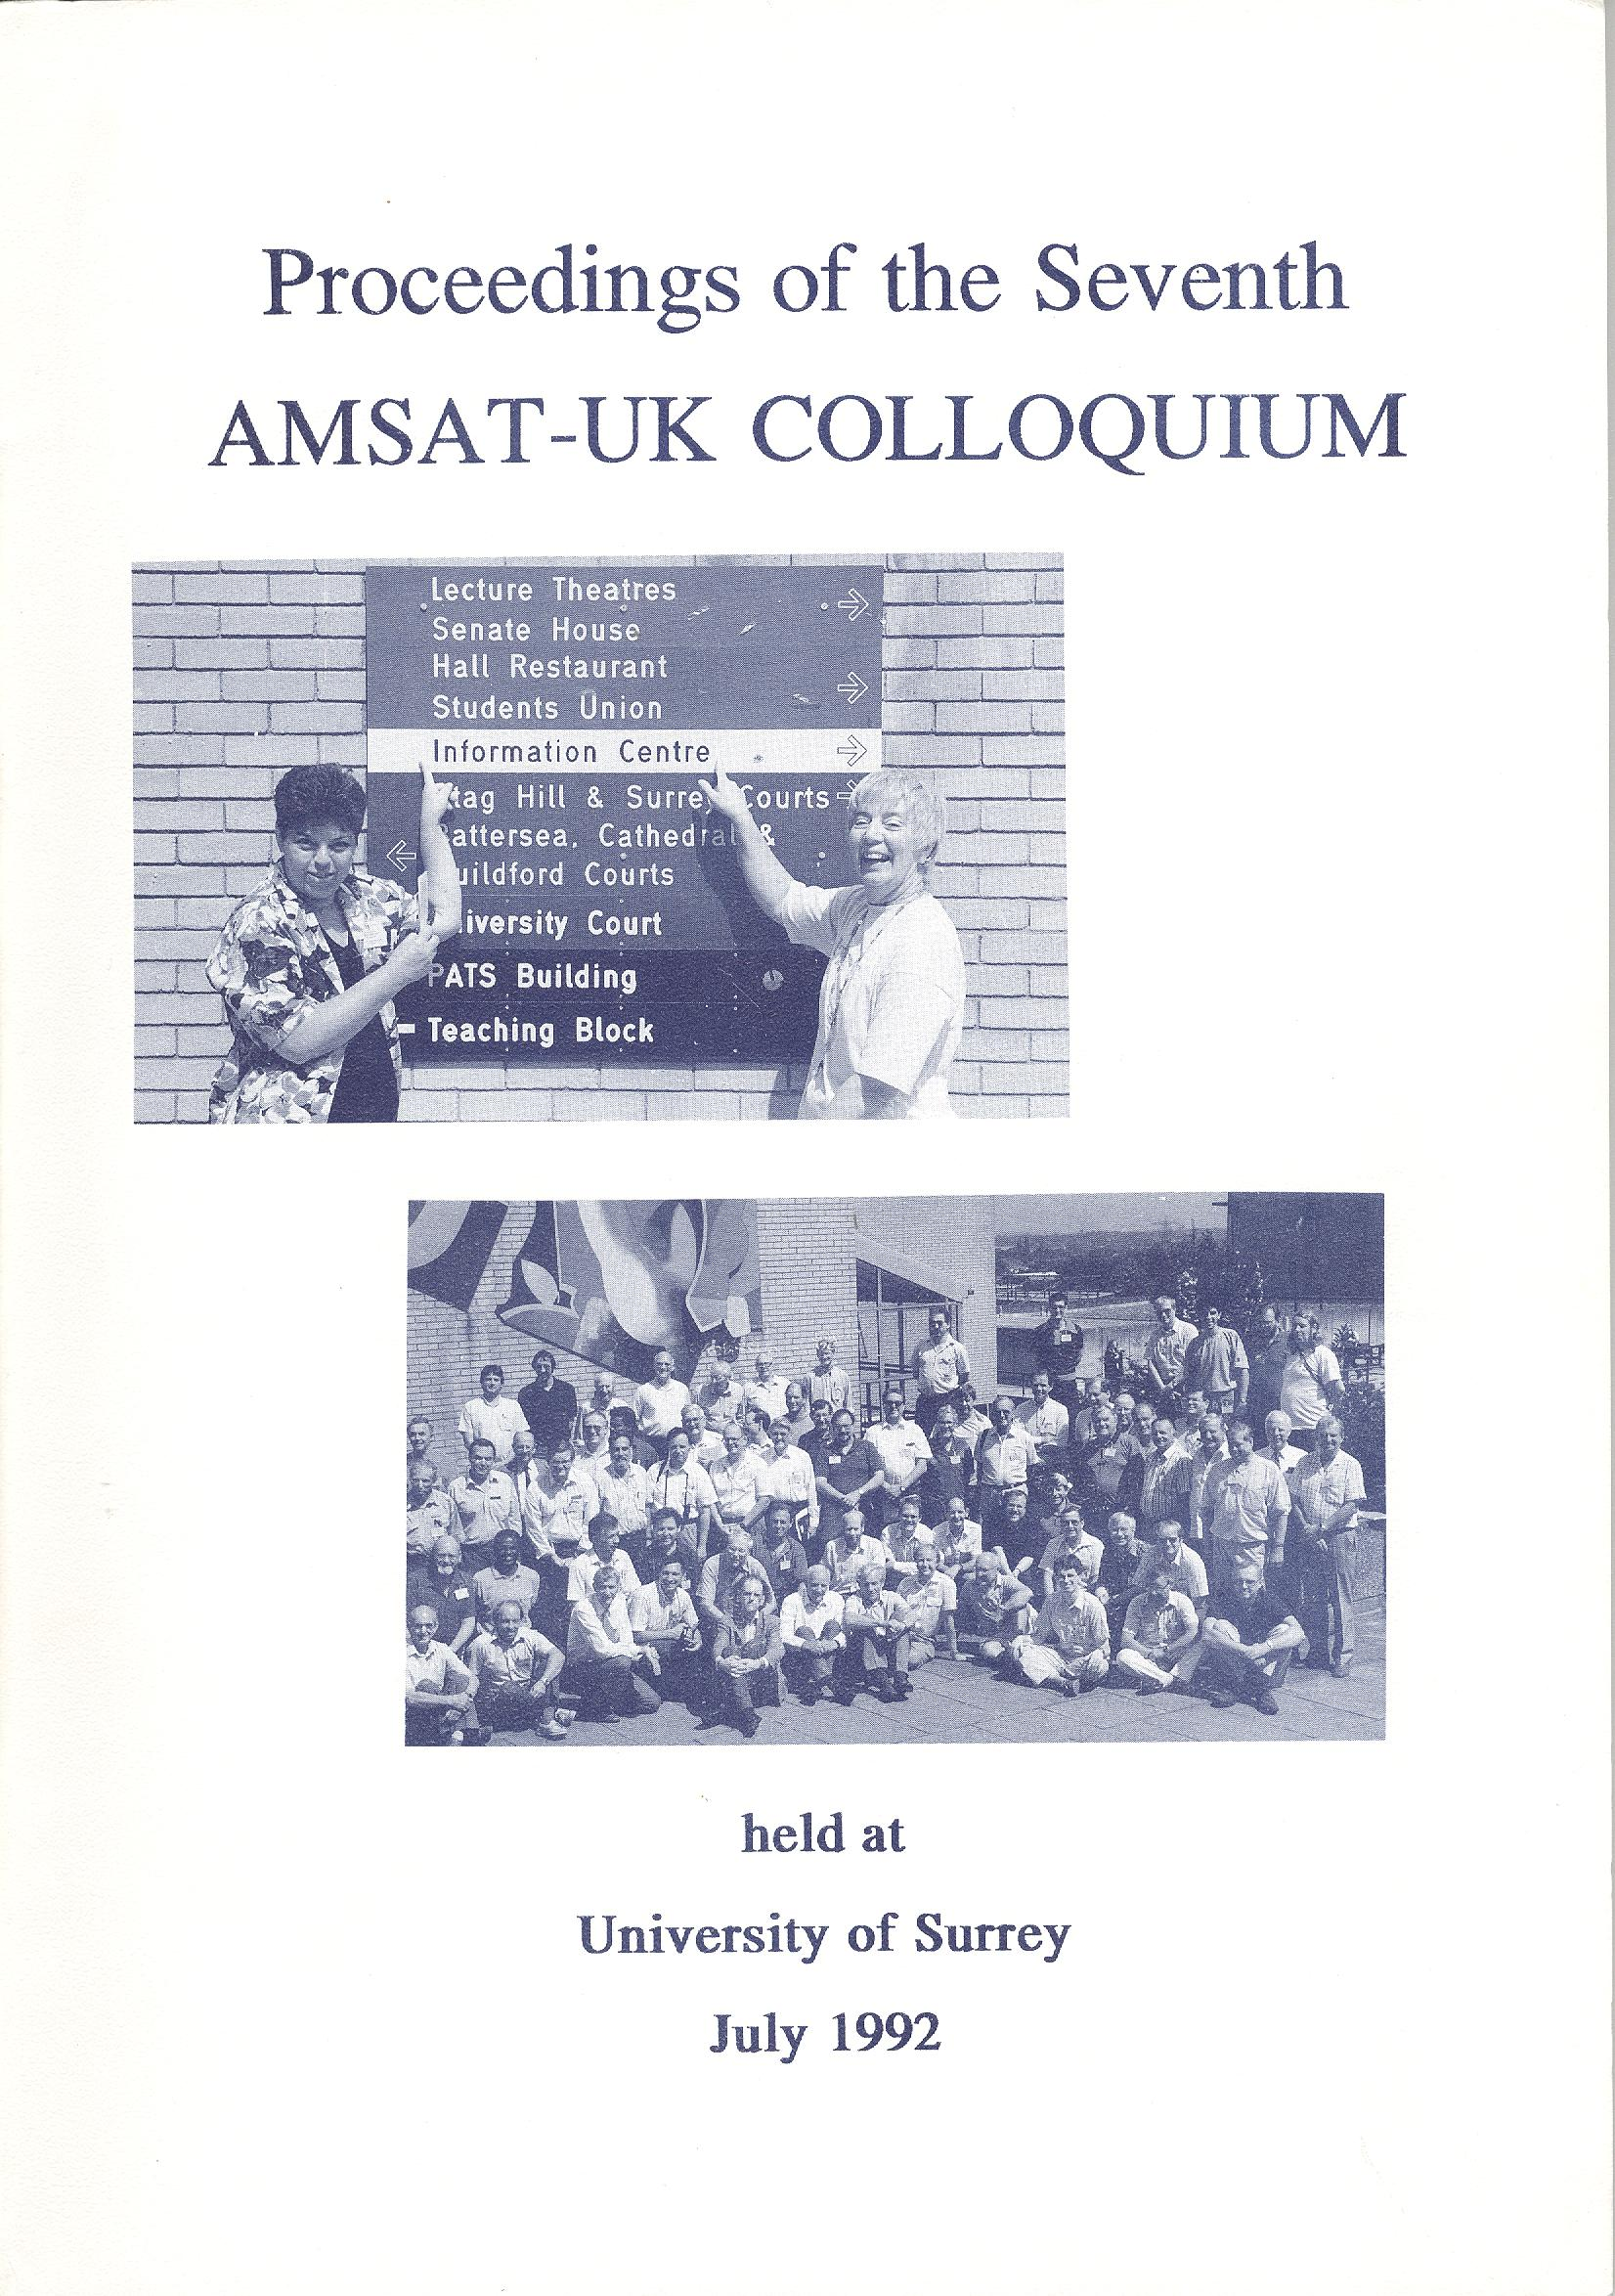 The Proceedings of the Seventh AMSAT-UK Colloquium 1992